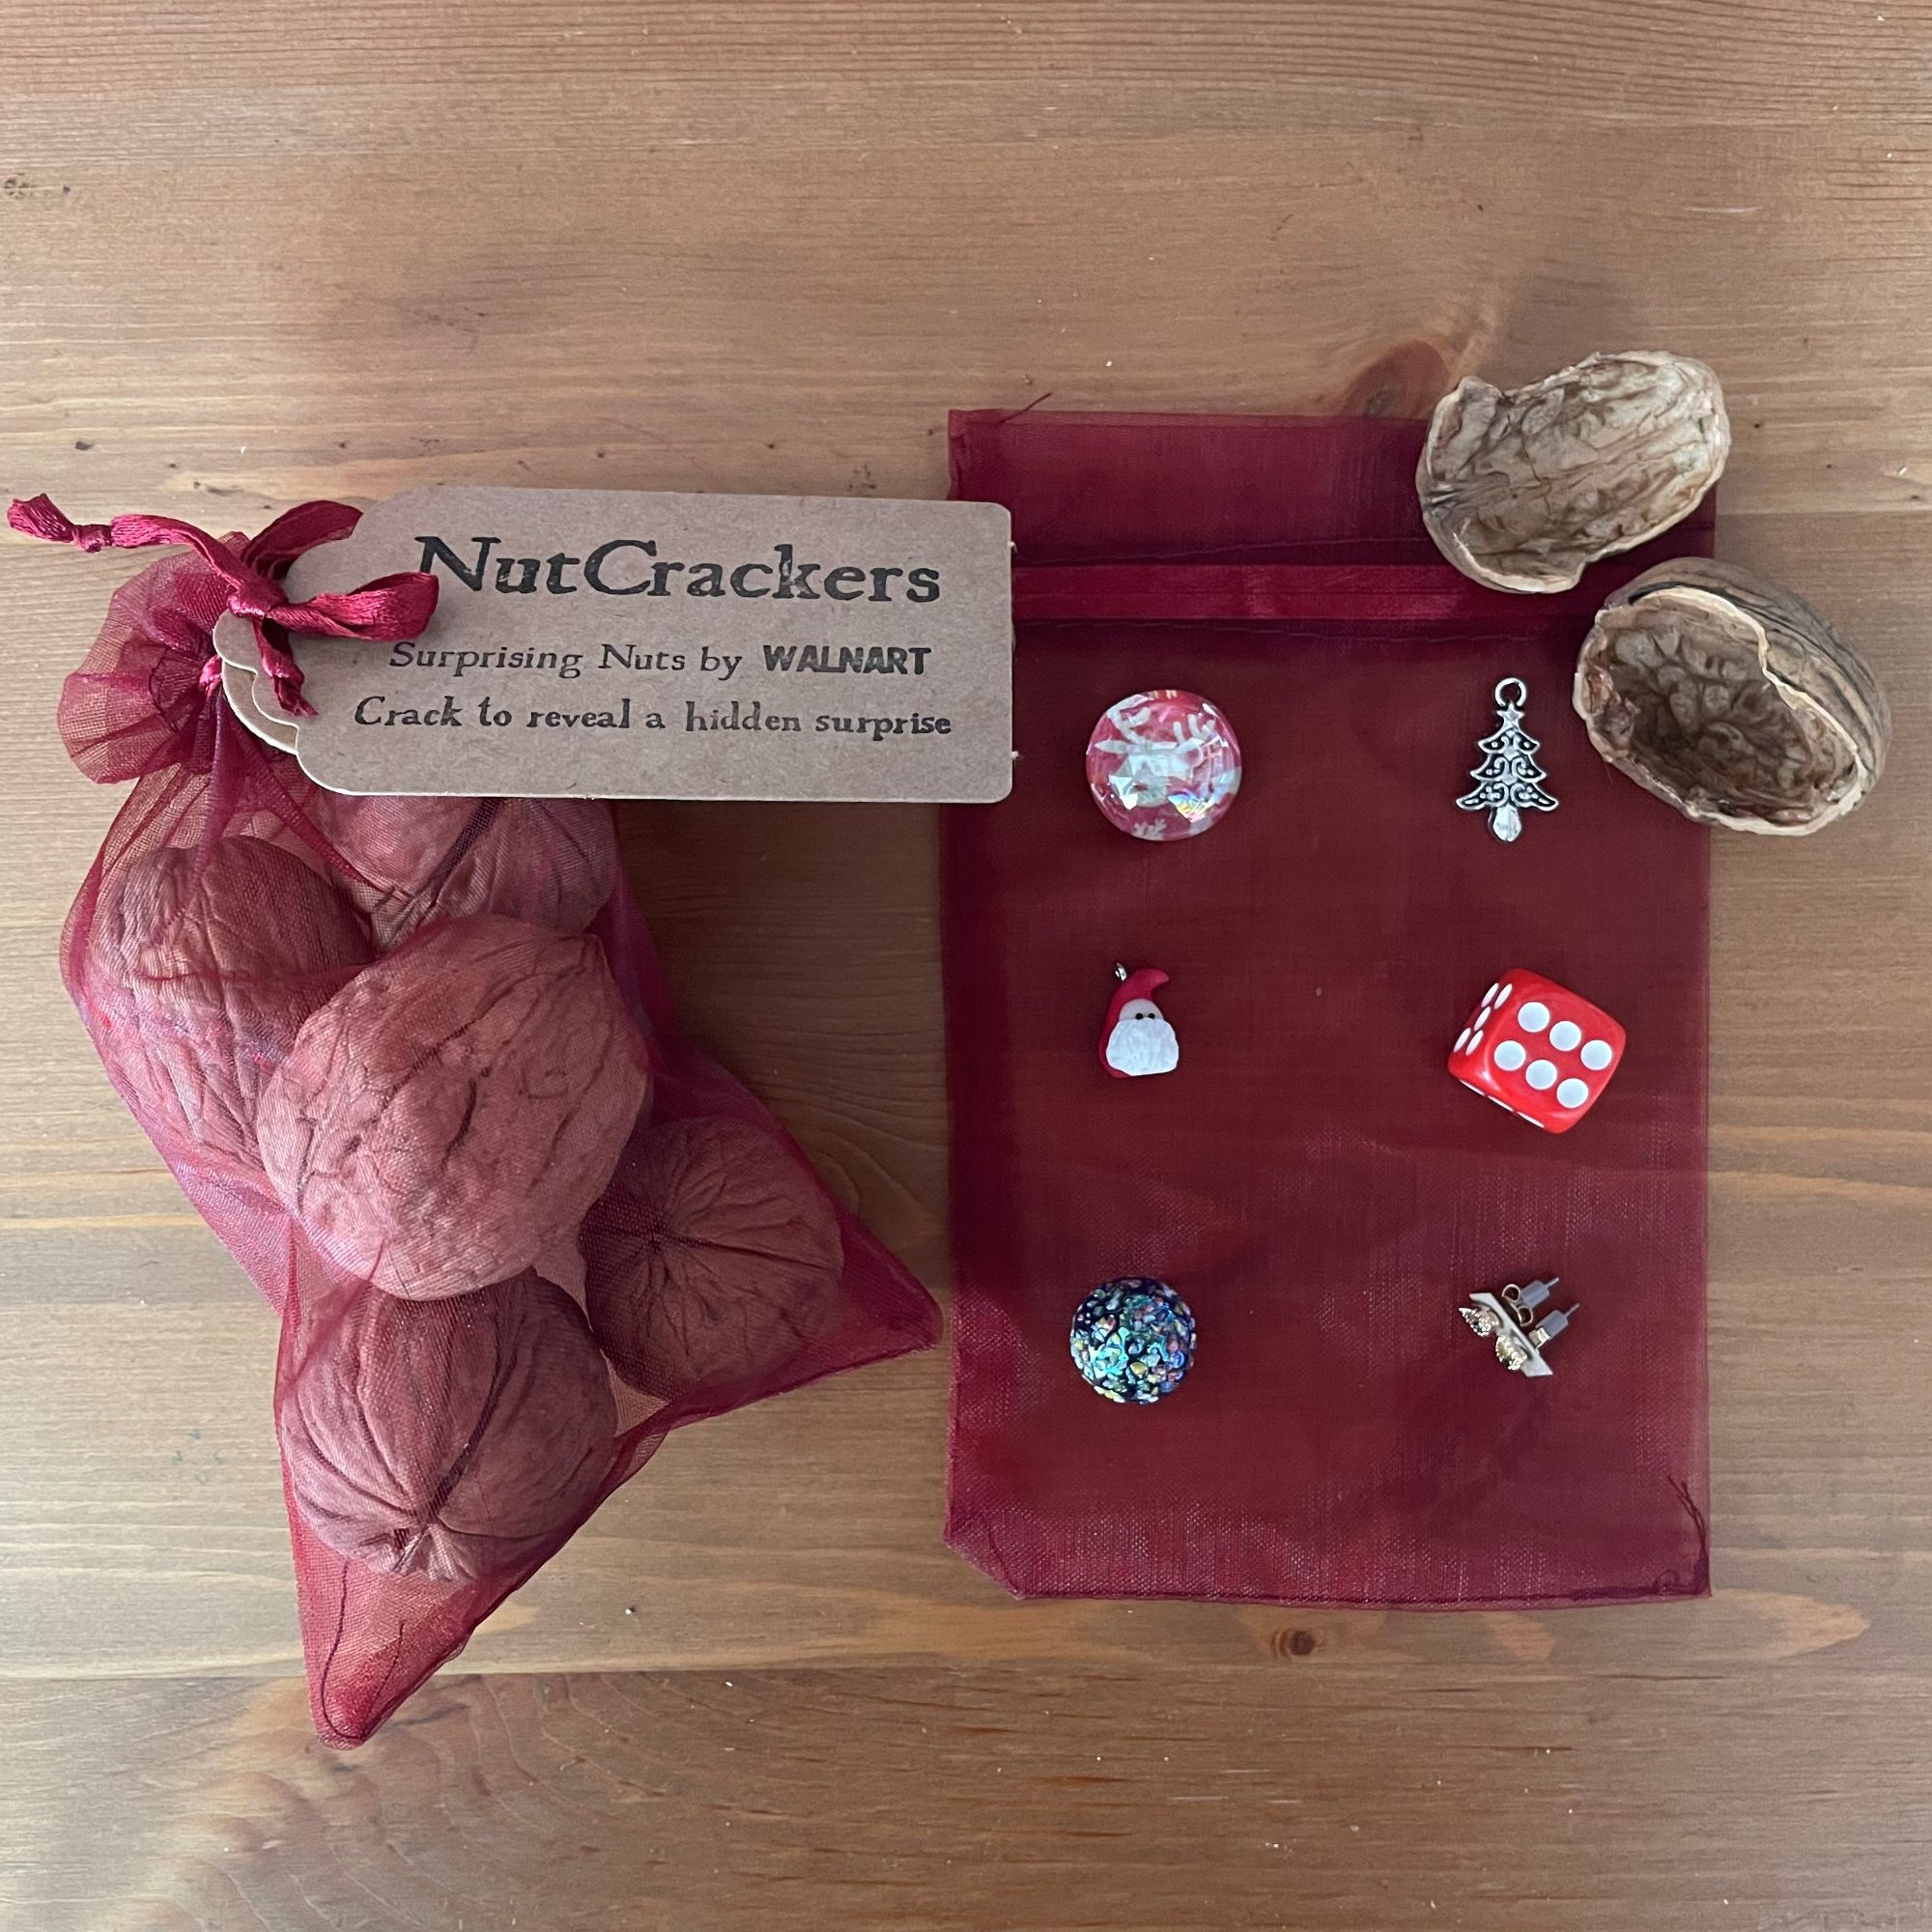 NutCrackers - Assorted Christmas Walnut shell surprise crackers in a burgundy organza bag - contents.jpg